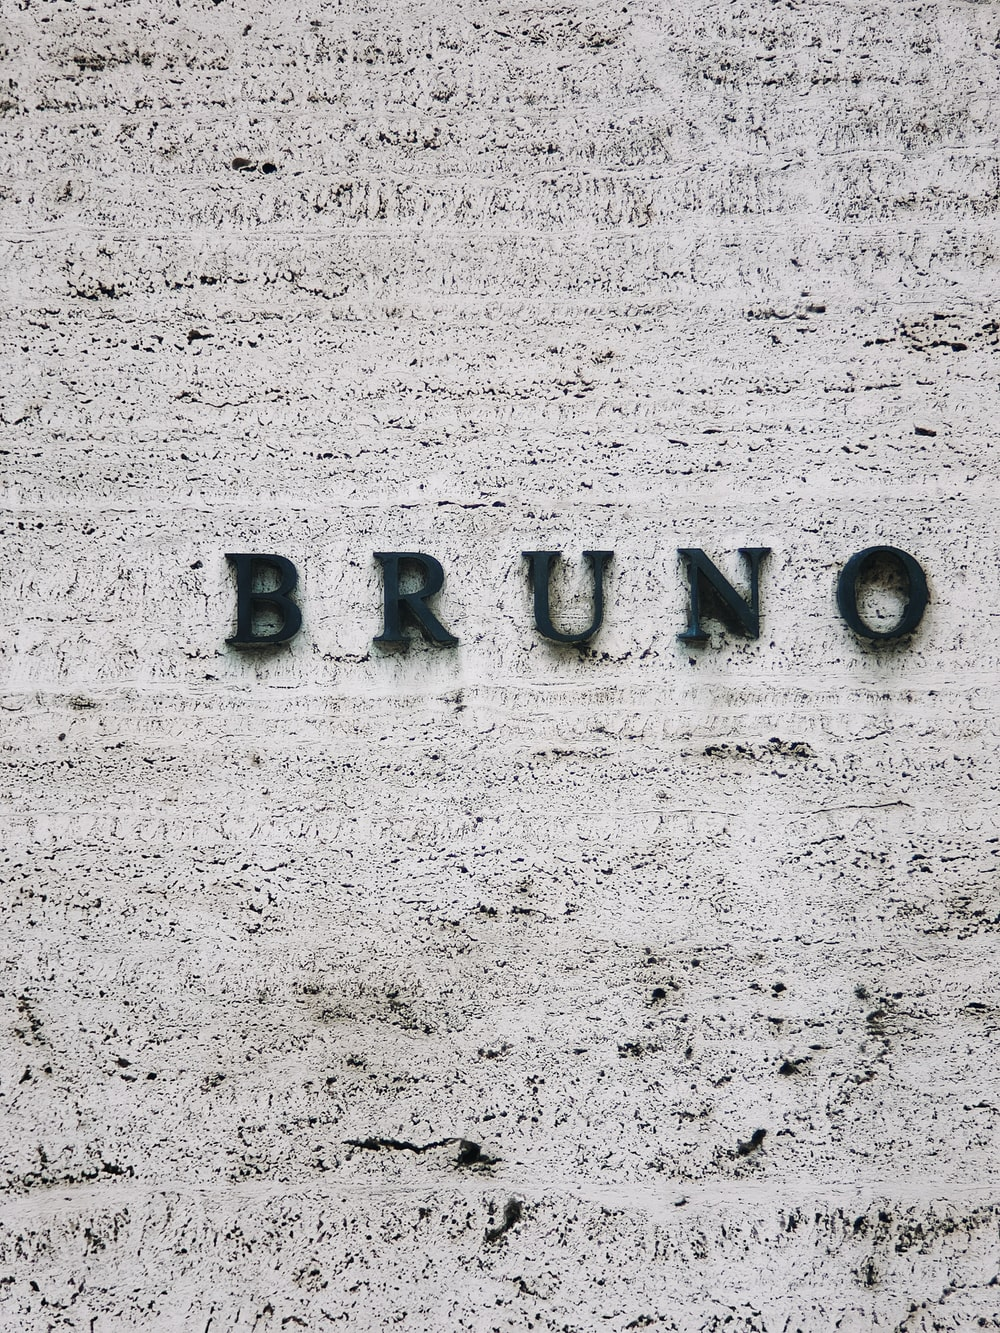 Bruno text on gray background